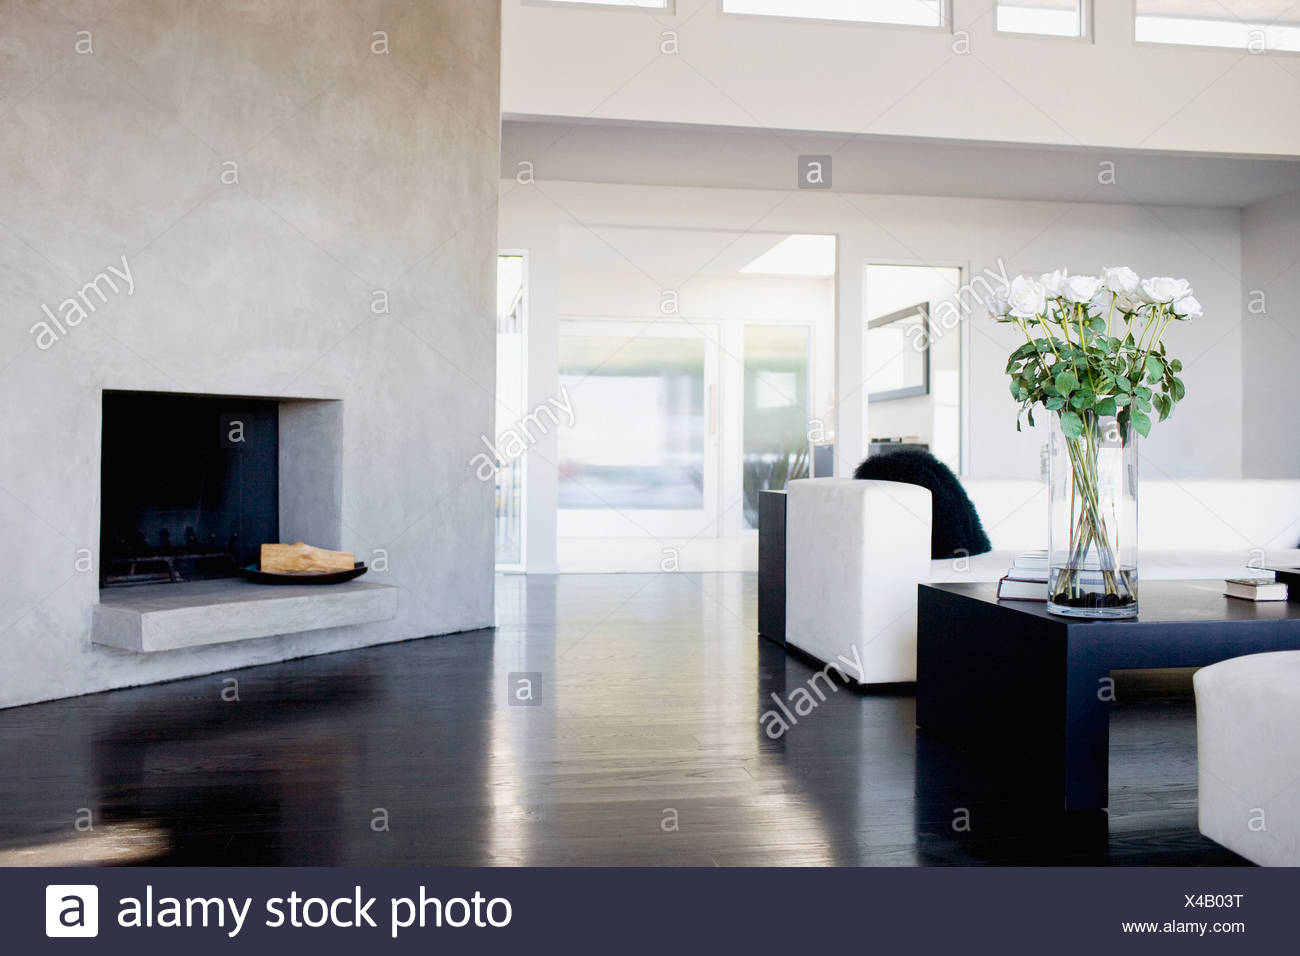 Interior of modern living room - Stock Image